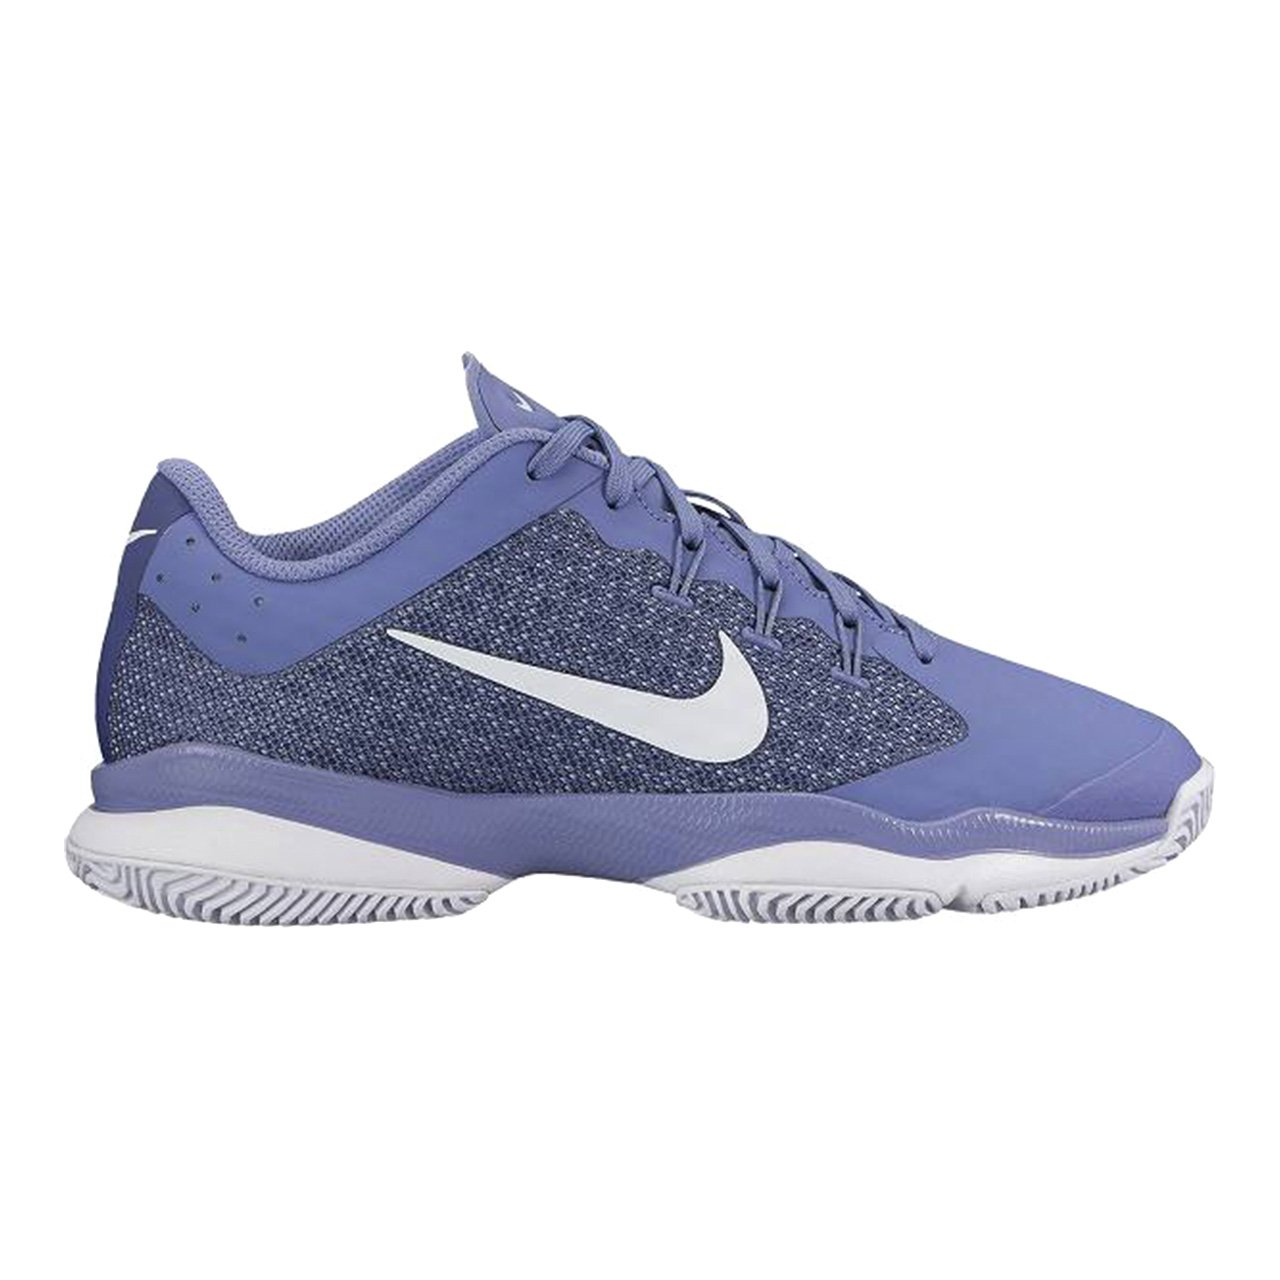 Galleon - NIKE Women s Air Zoom Ultra Tennis Shoes (7.5 B US 92a8fcc15